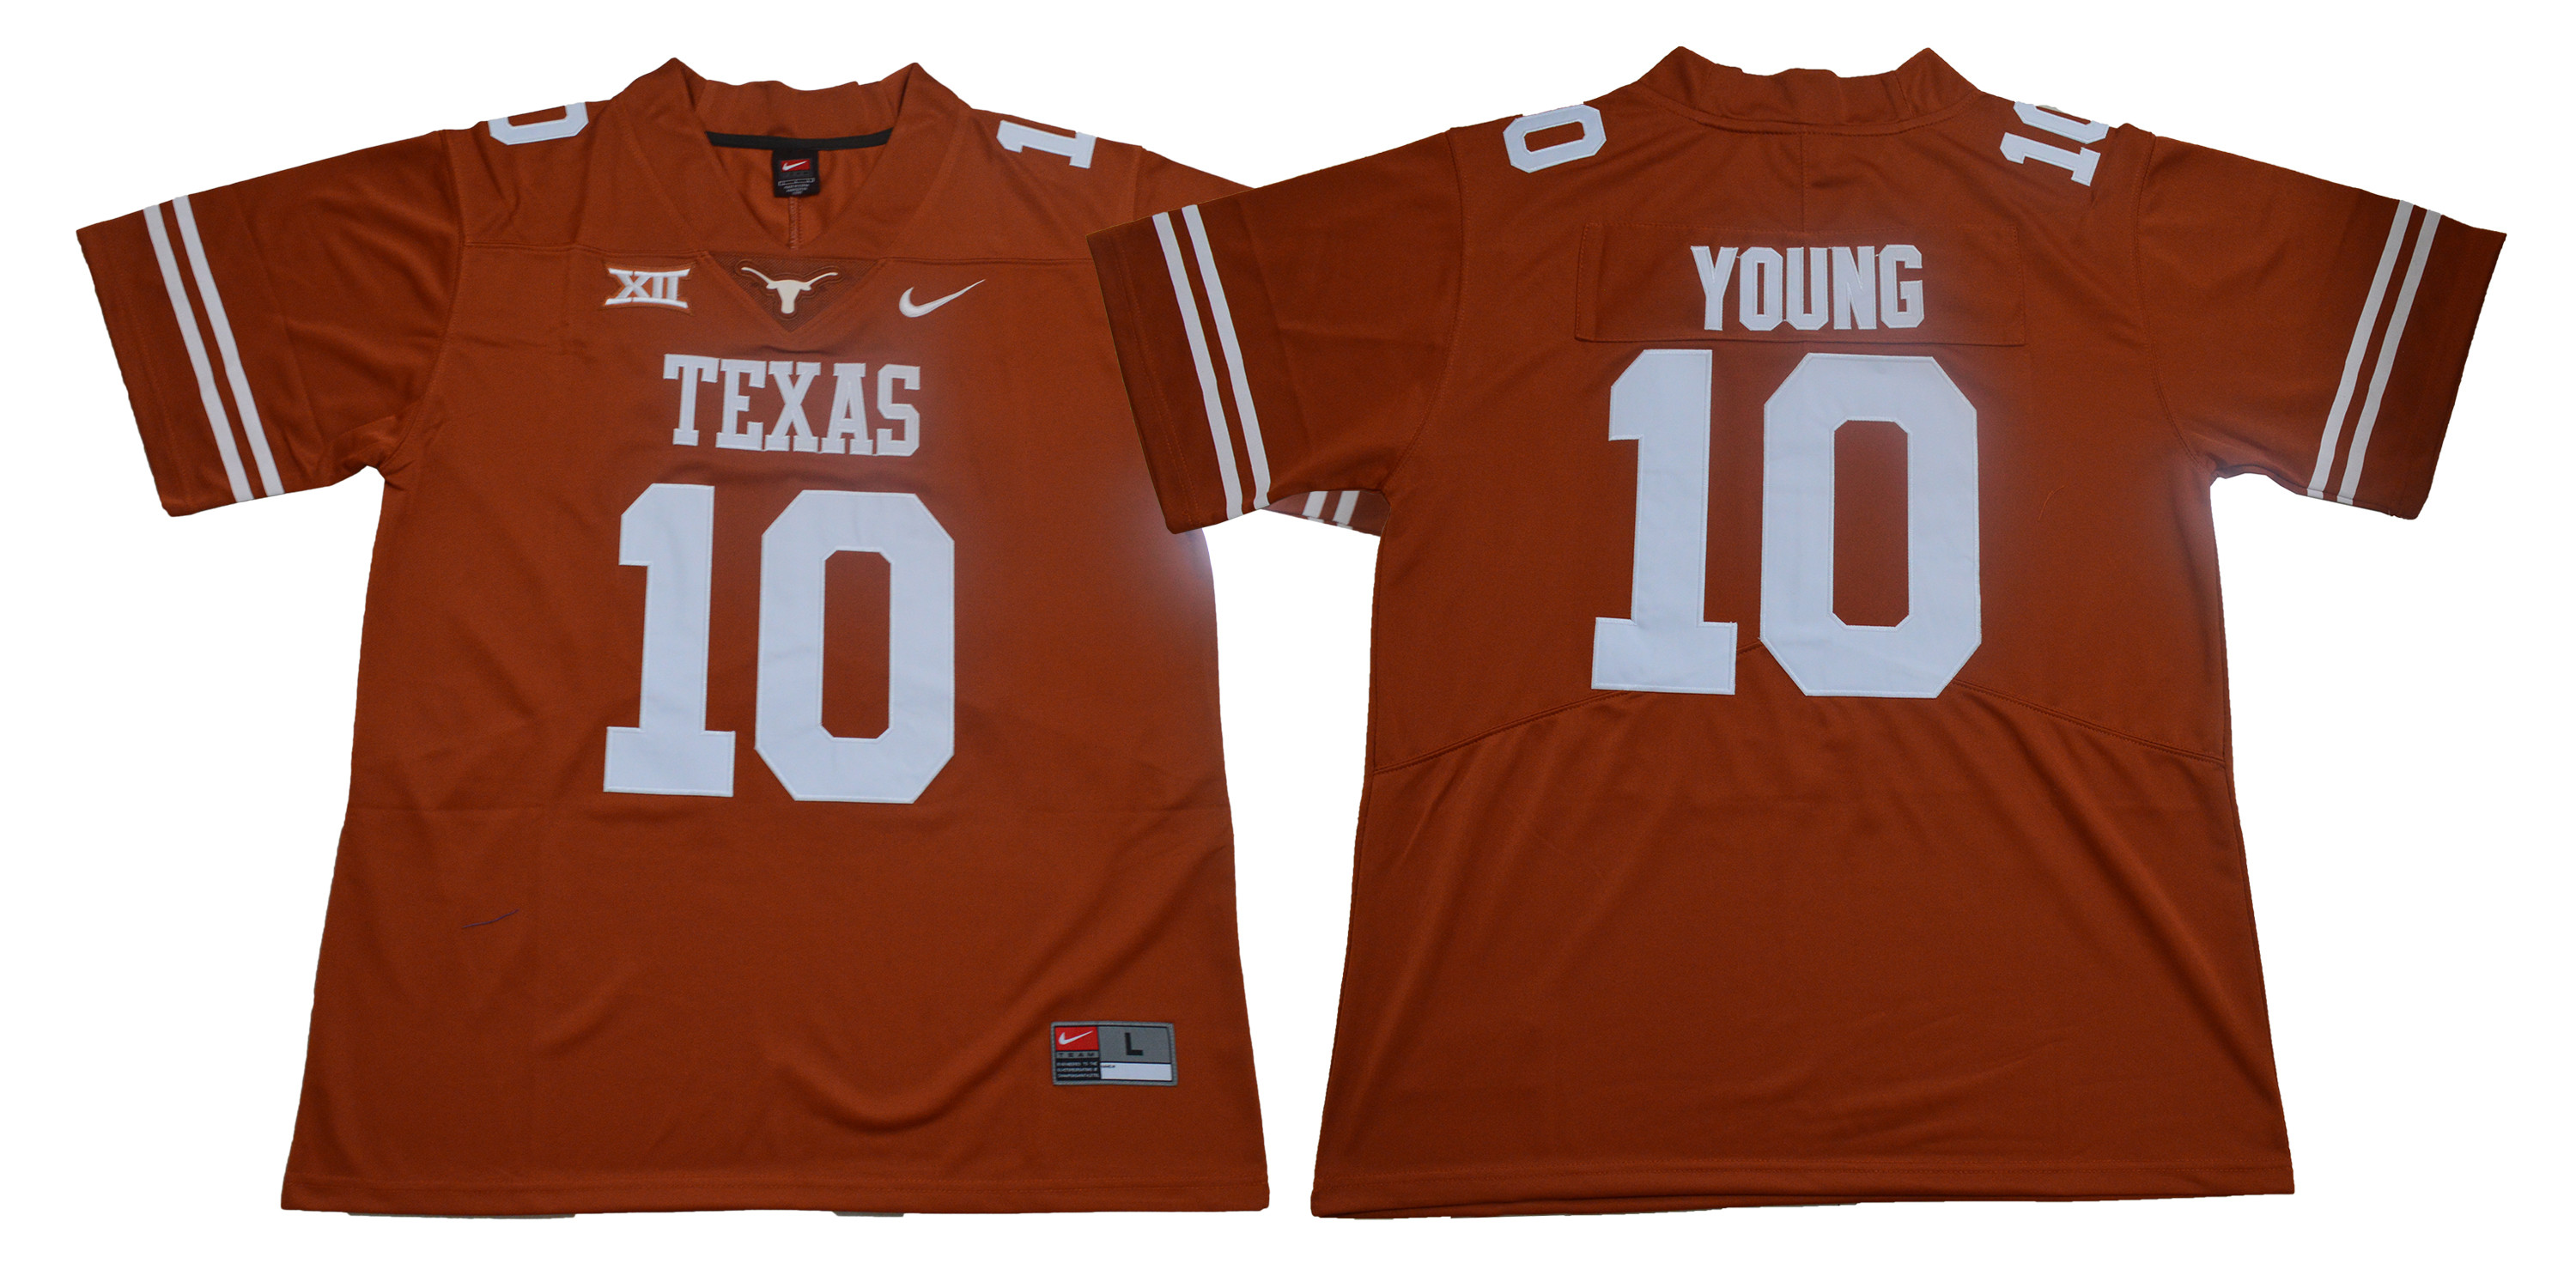 Texas Longhorns 10 Vince Young Brunt Orange Nike College Football Jersey